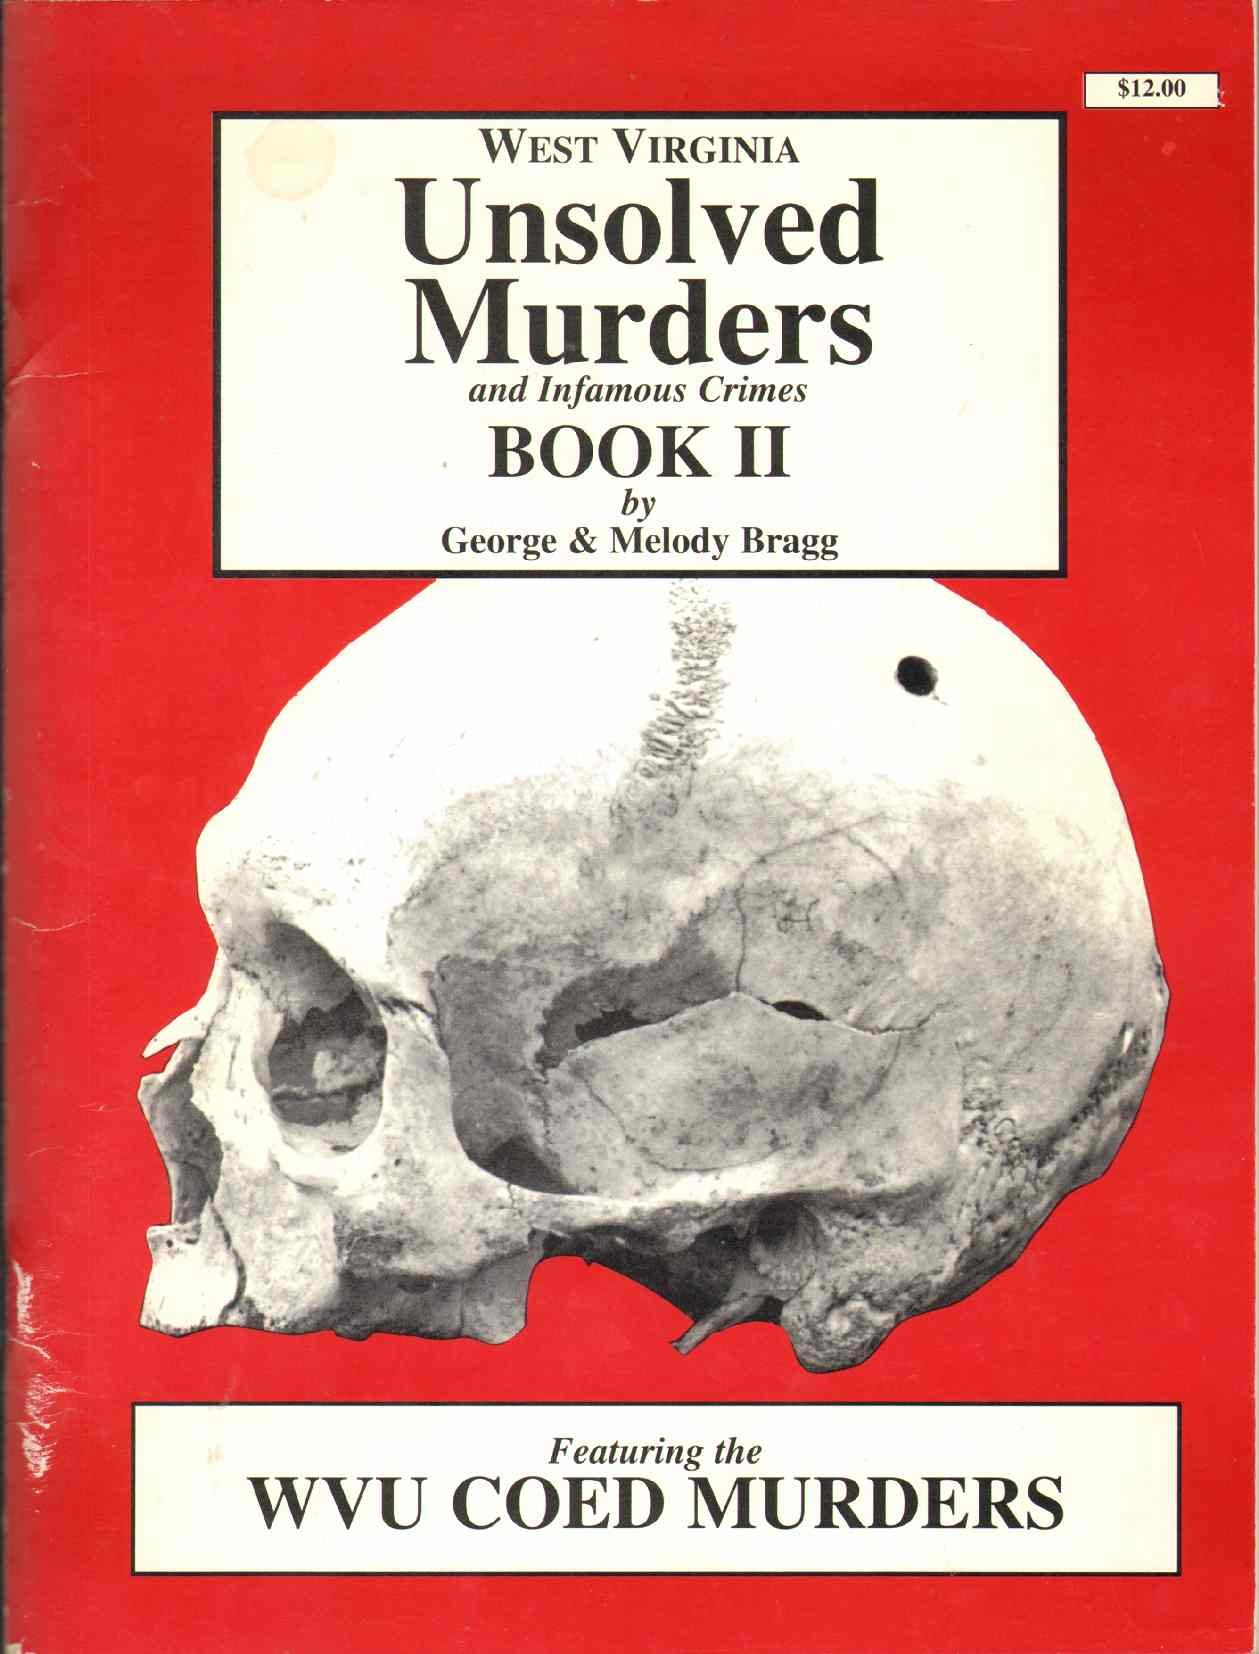 West Virginia Unsolved Murders And Infamous Crimes Book II